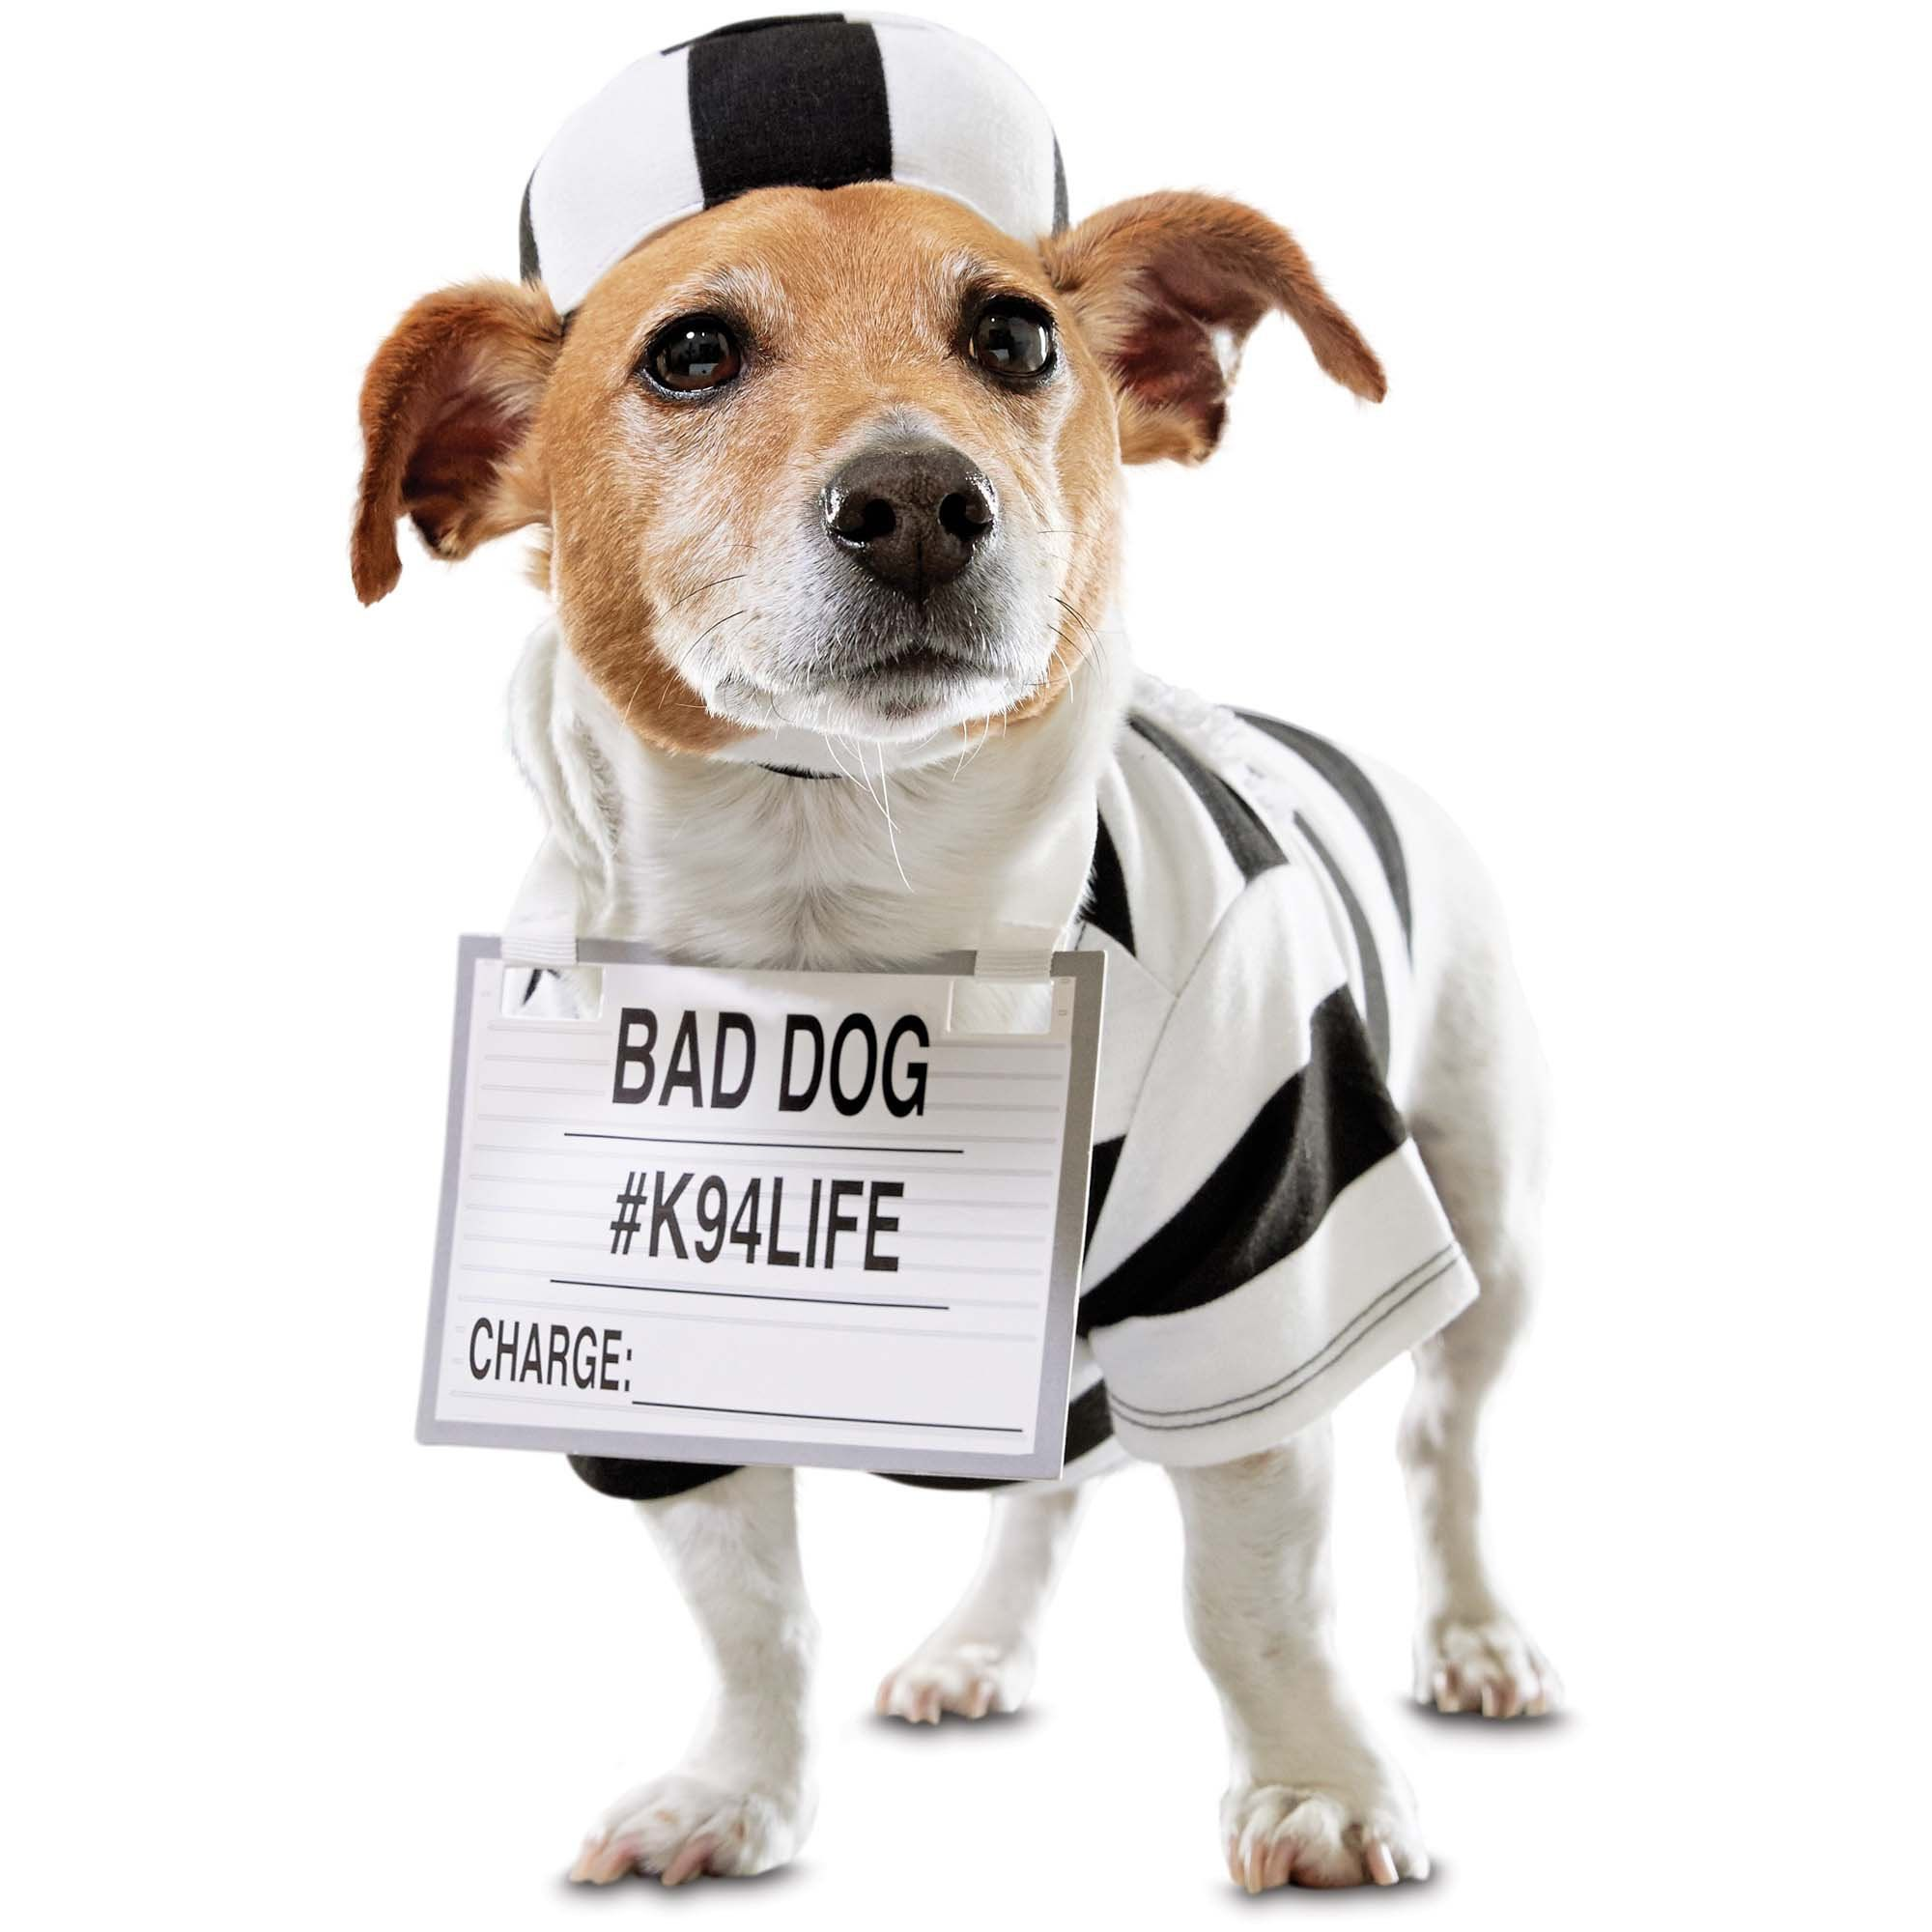 Find Your Pup Guilty With The Bootique Pug Shot Prison Dog Costume